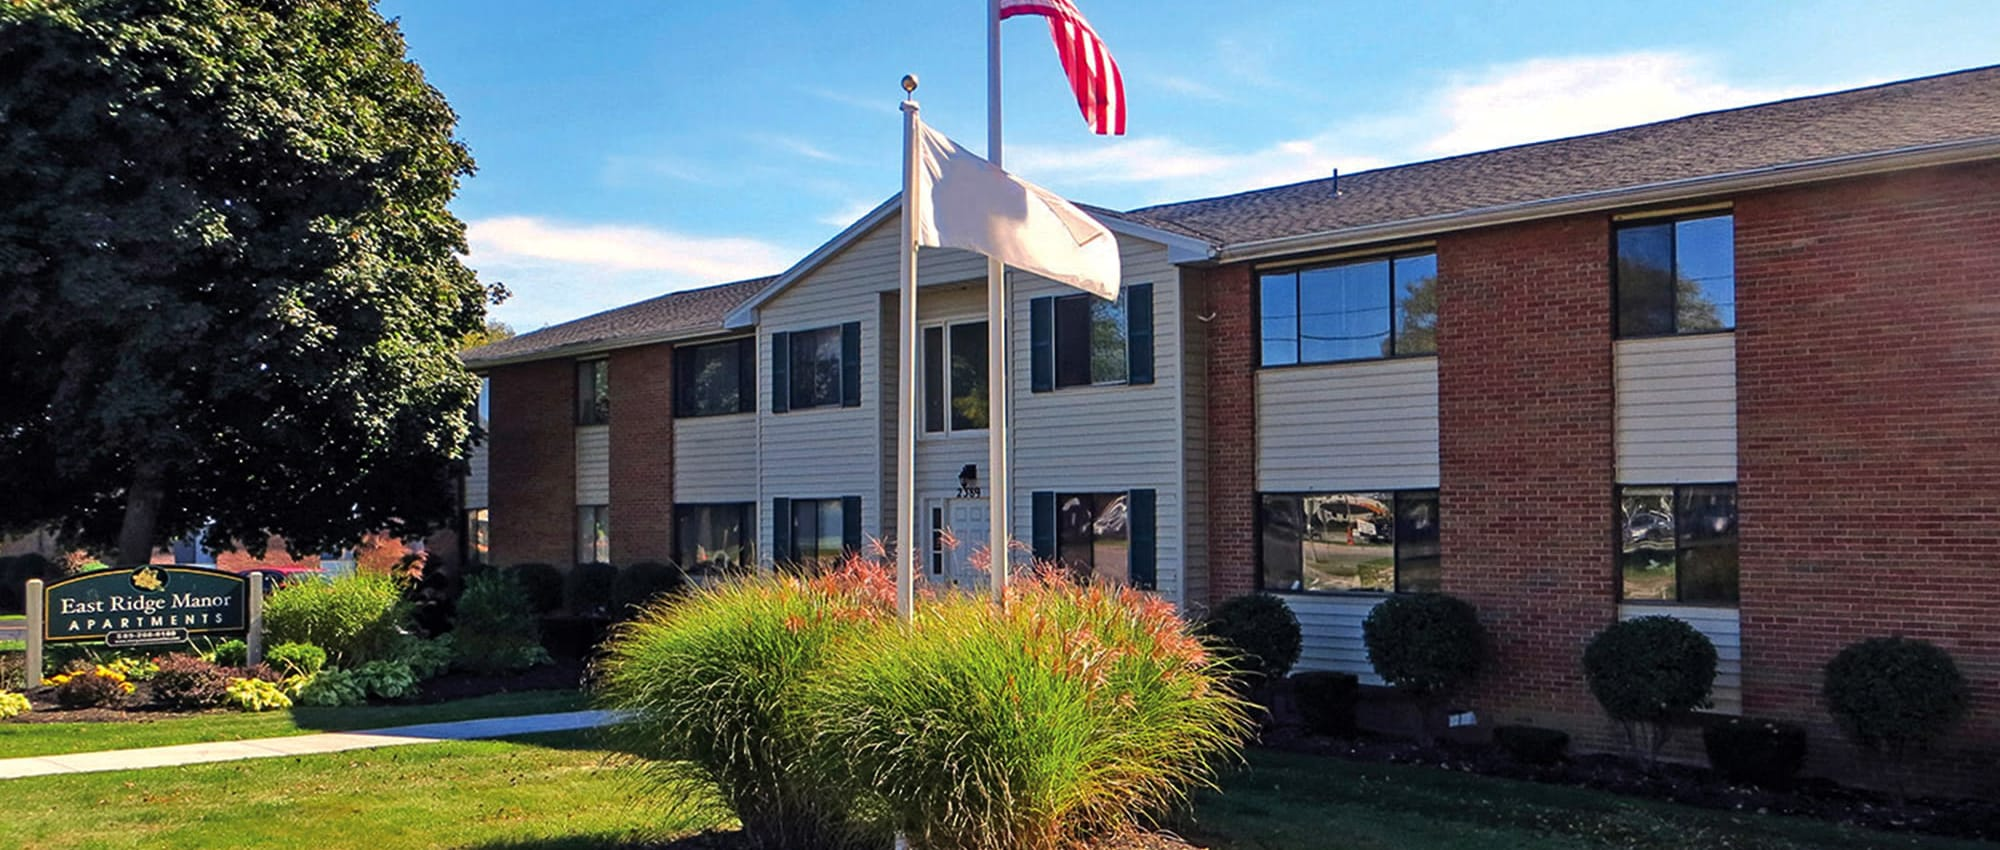 Apartments at East Ridge Manor Apartments in Rochester, New York